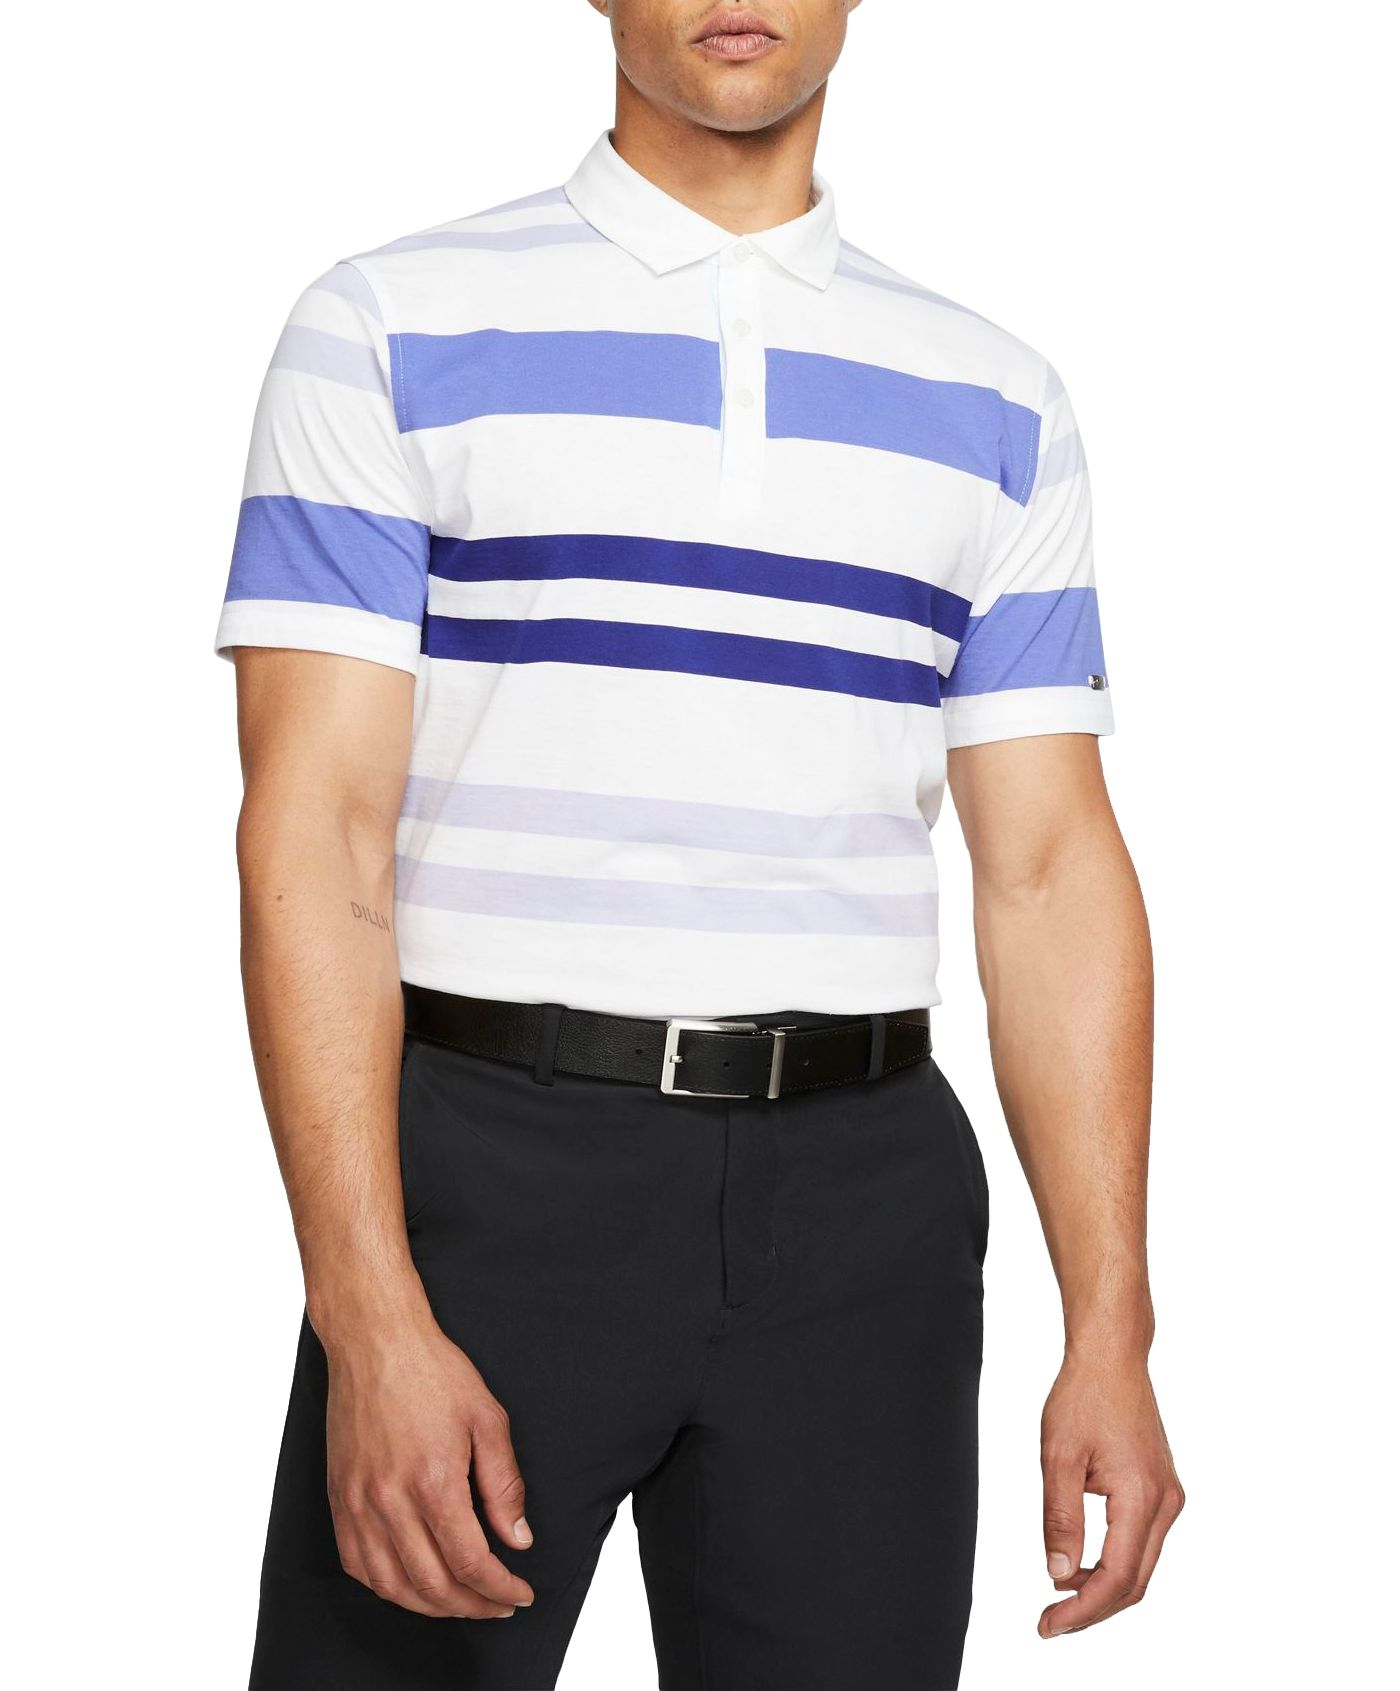 Nike Men's Striped Player Golf Polo